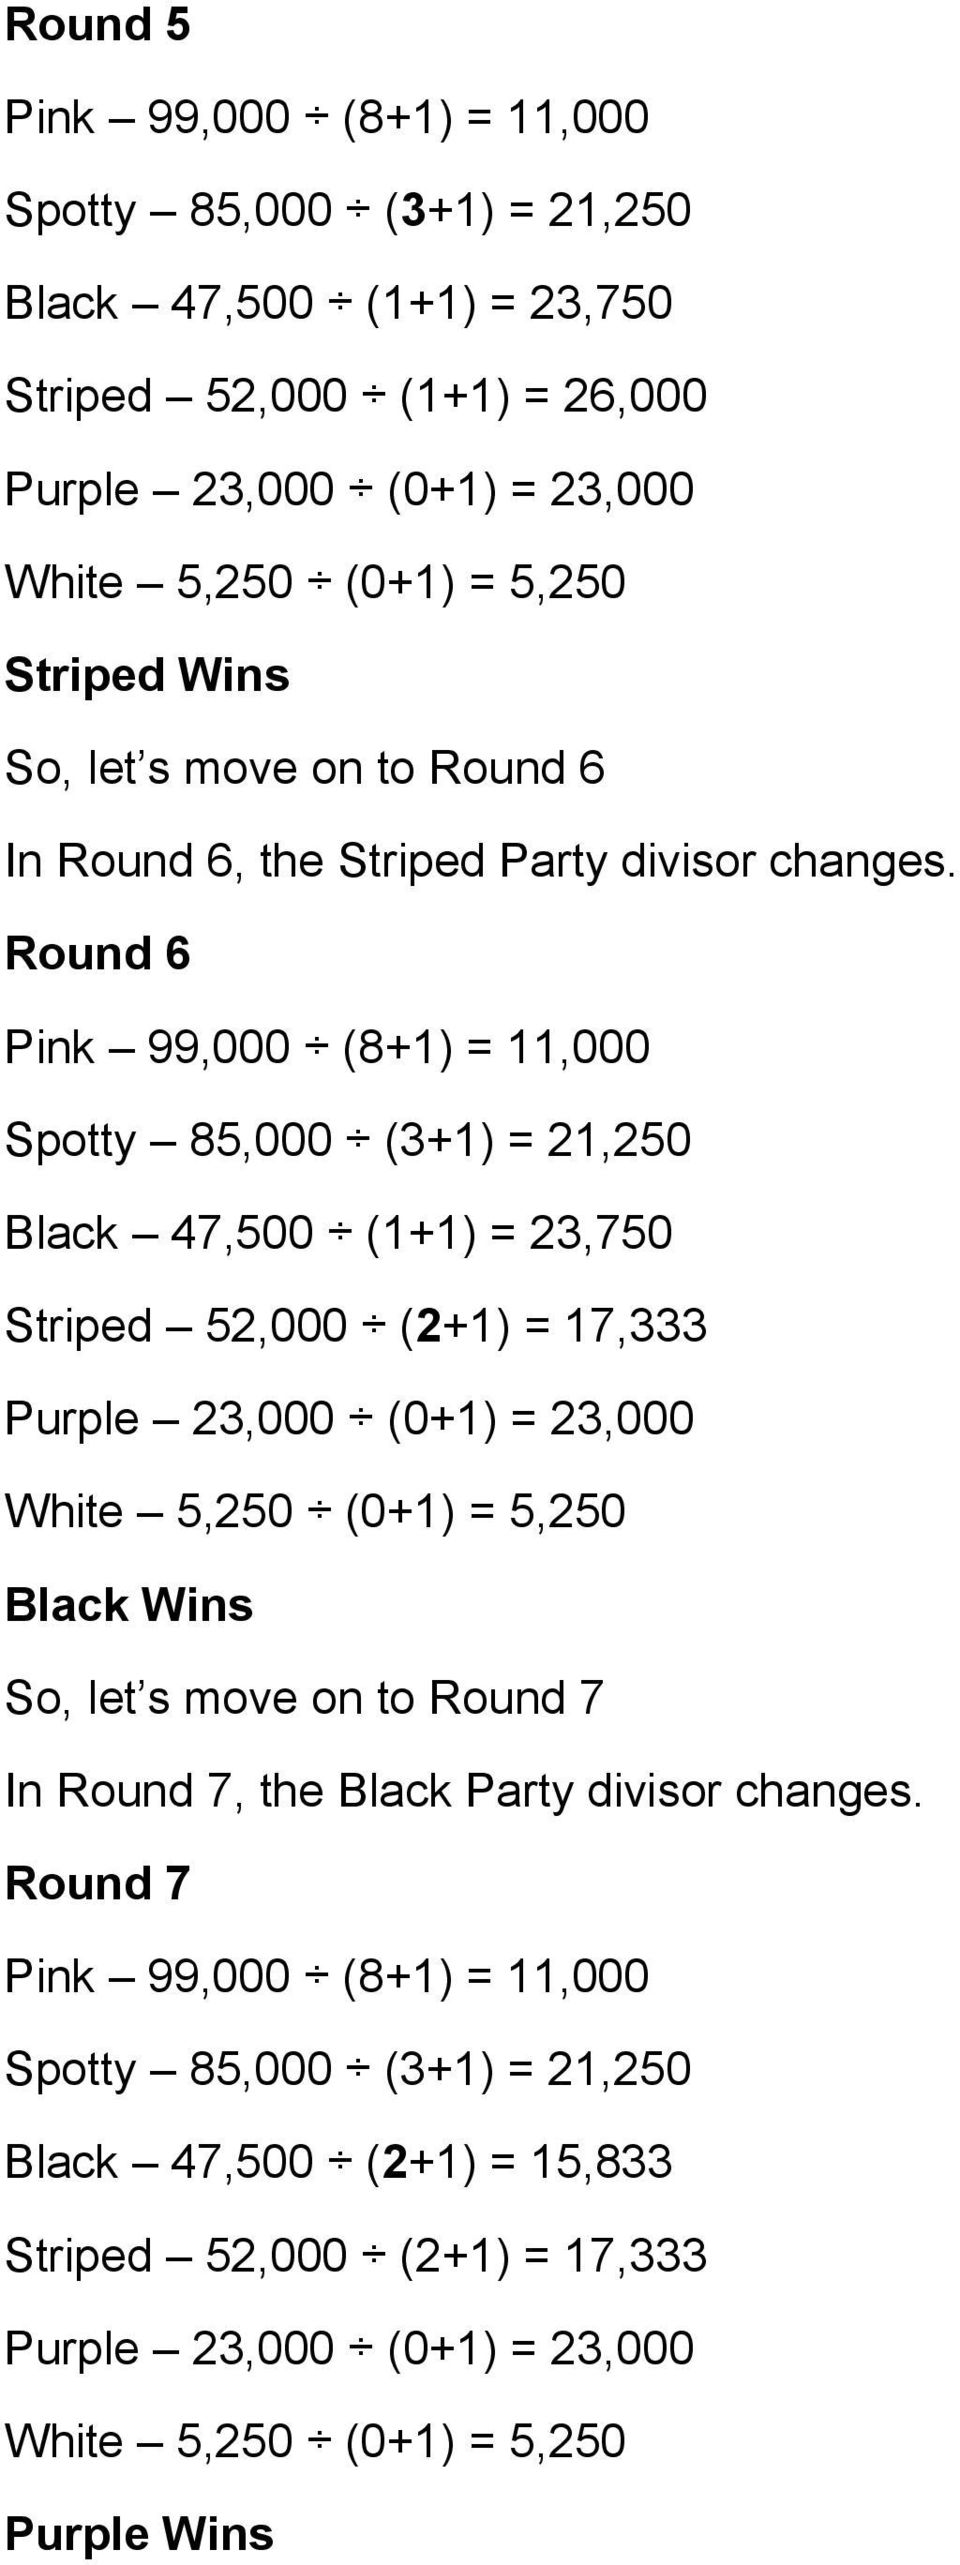 Round 6 Spotty 85,000 (3+1) = 21,250 Striped 52,000 (2+1) = 17,333 Black Wins So, let s move on to